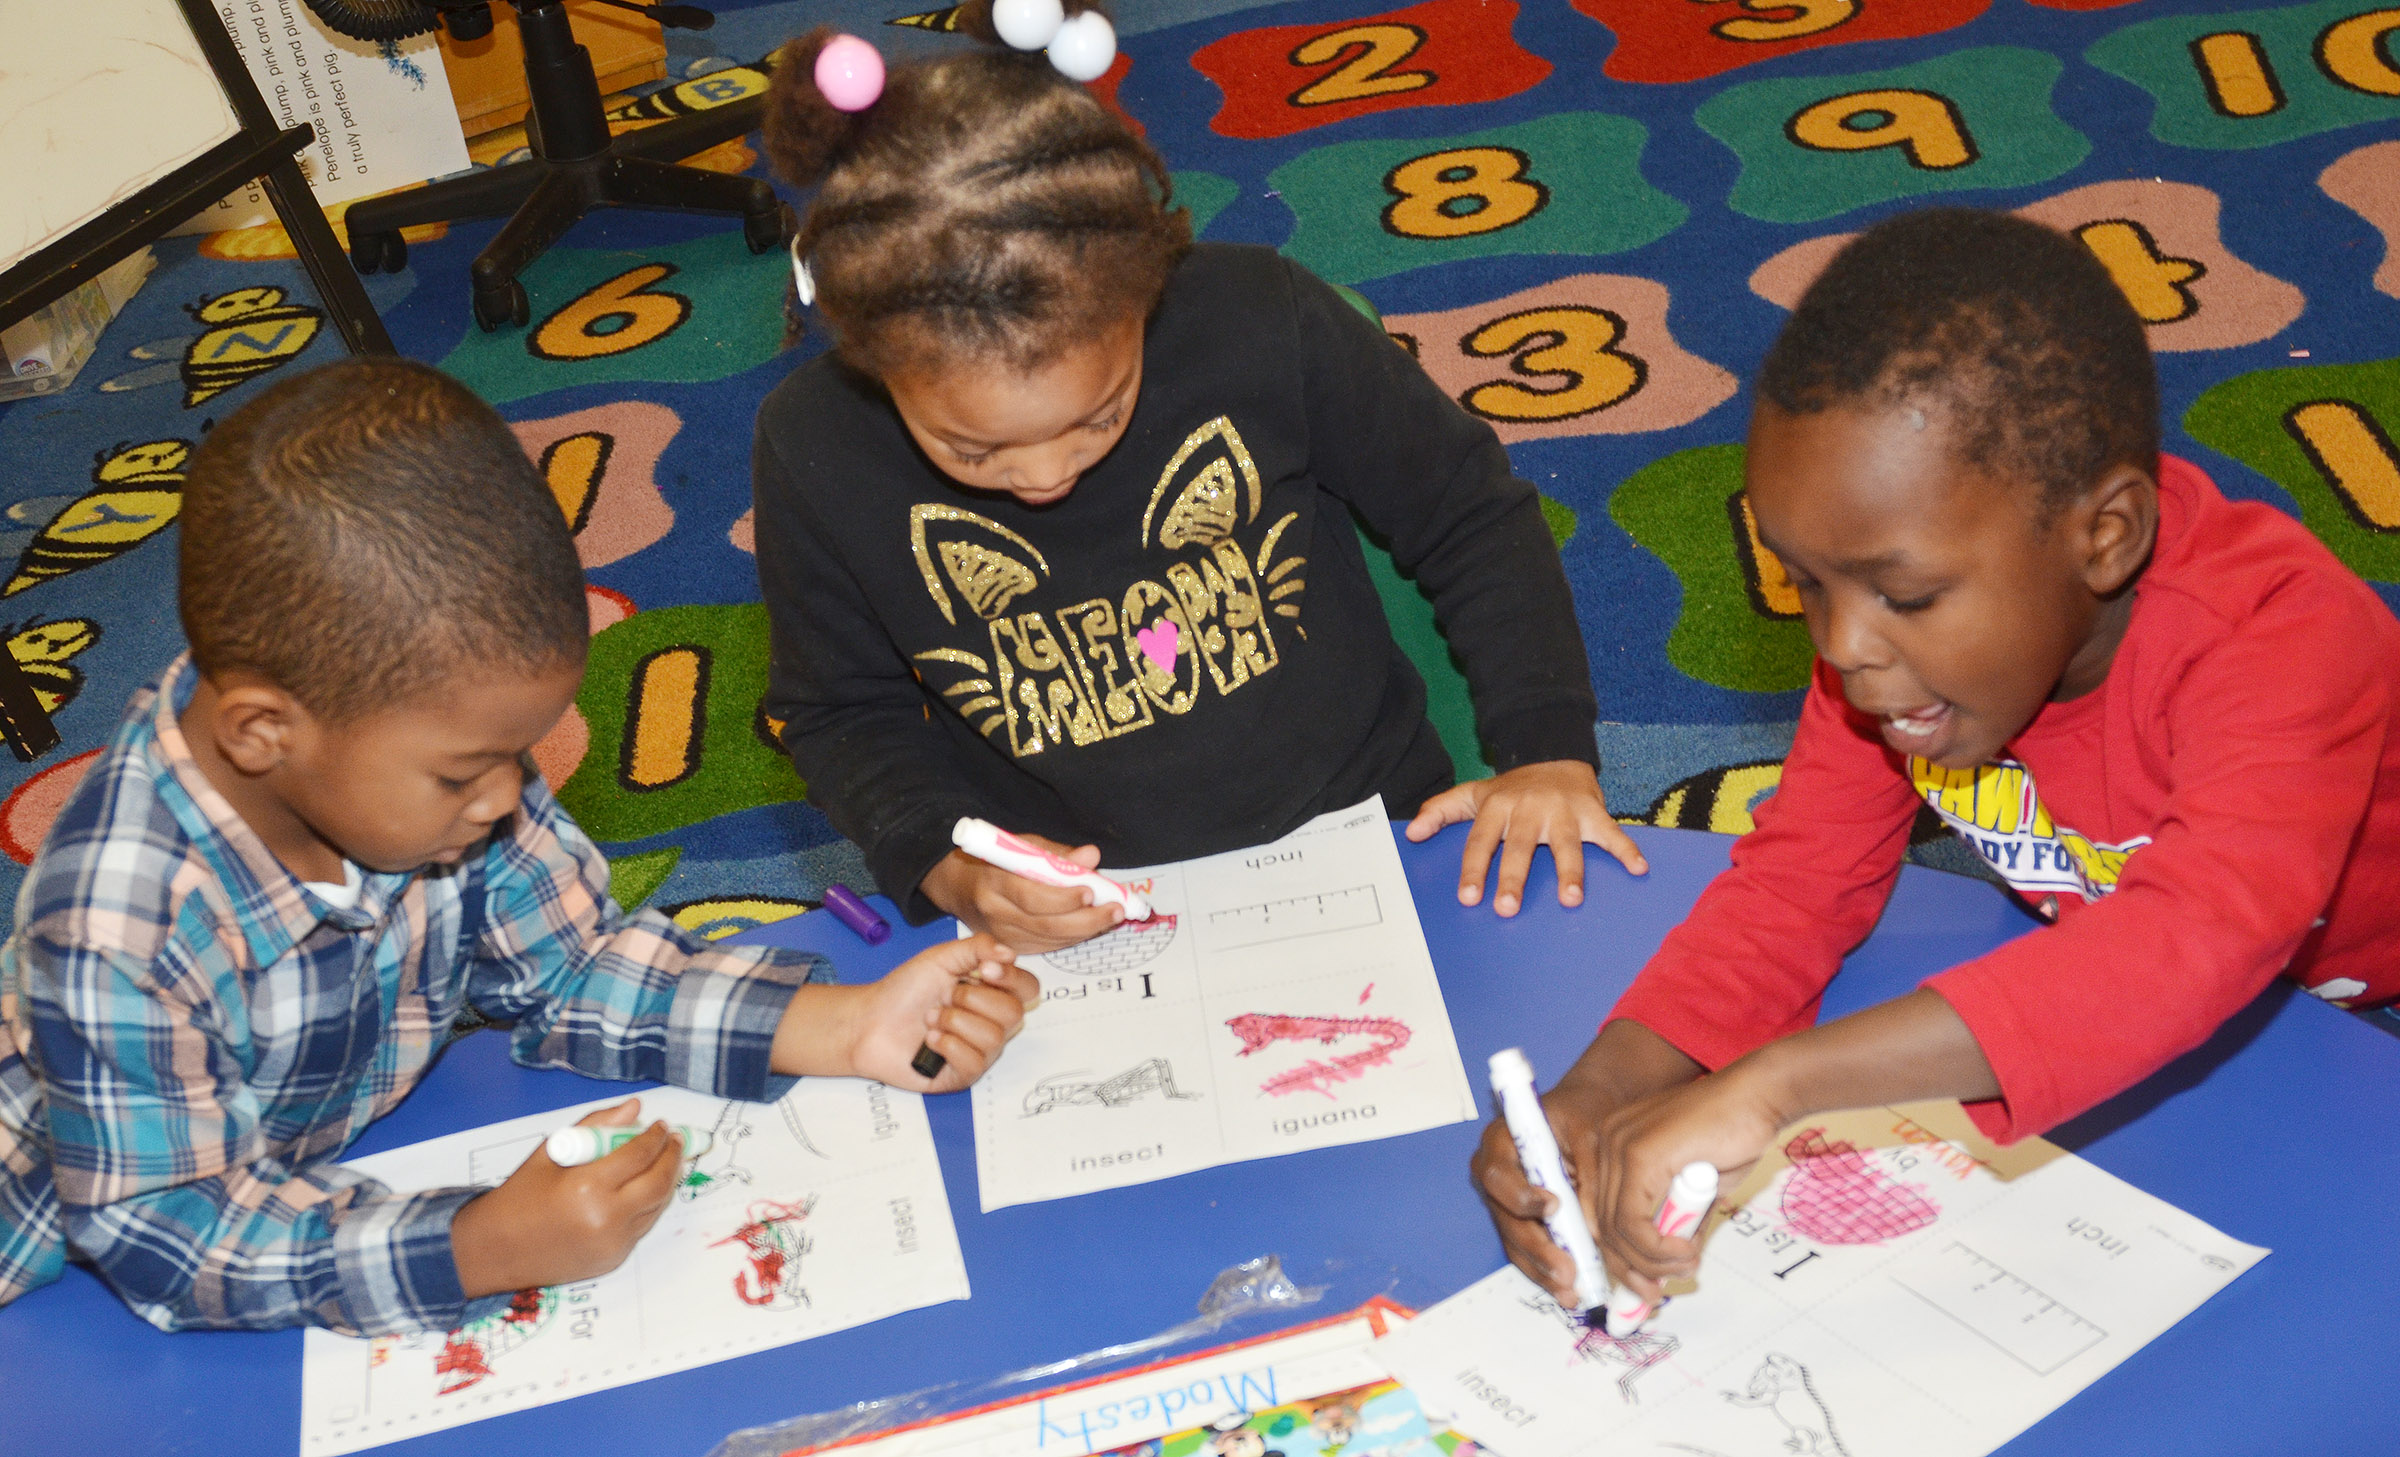 From left, CES preschool students Rakim Dunn, Modesty Taylor and Xavien Smith color their worksheets containing words that start with I.